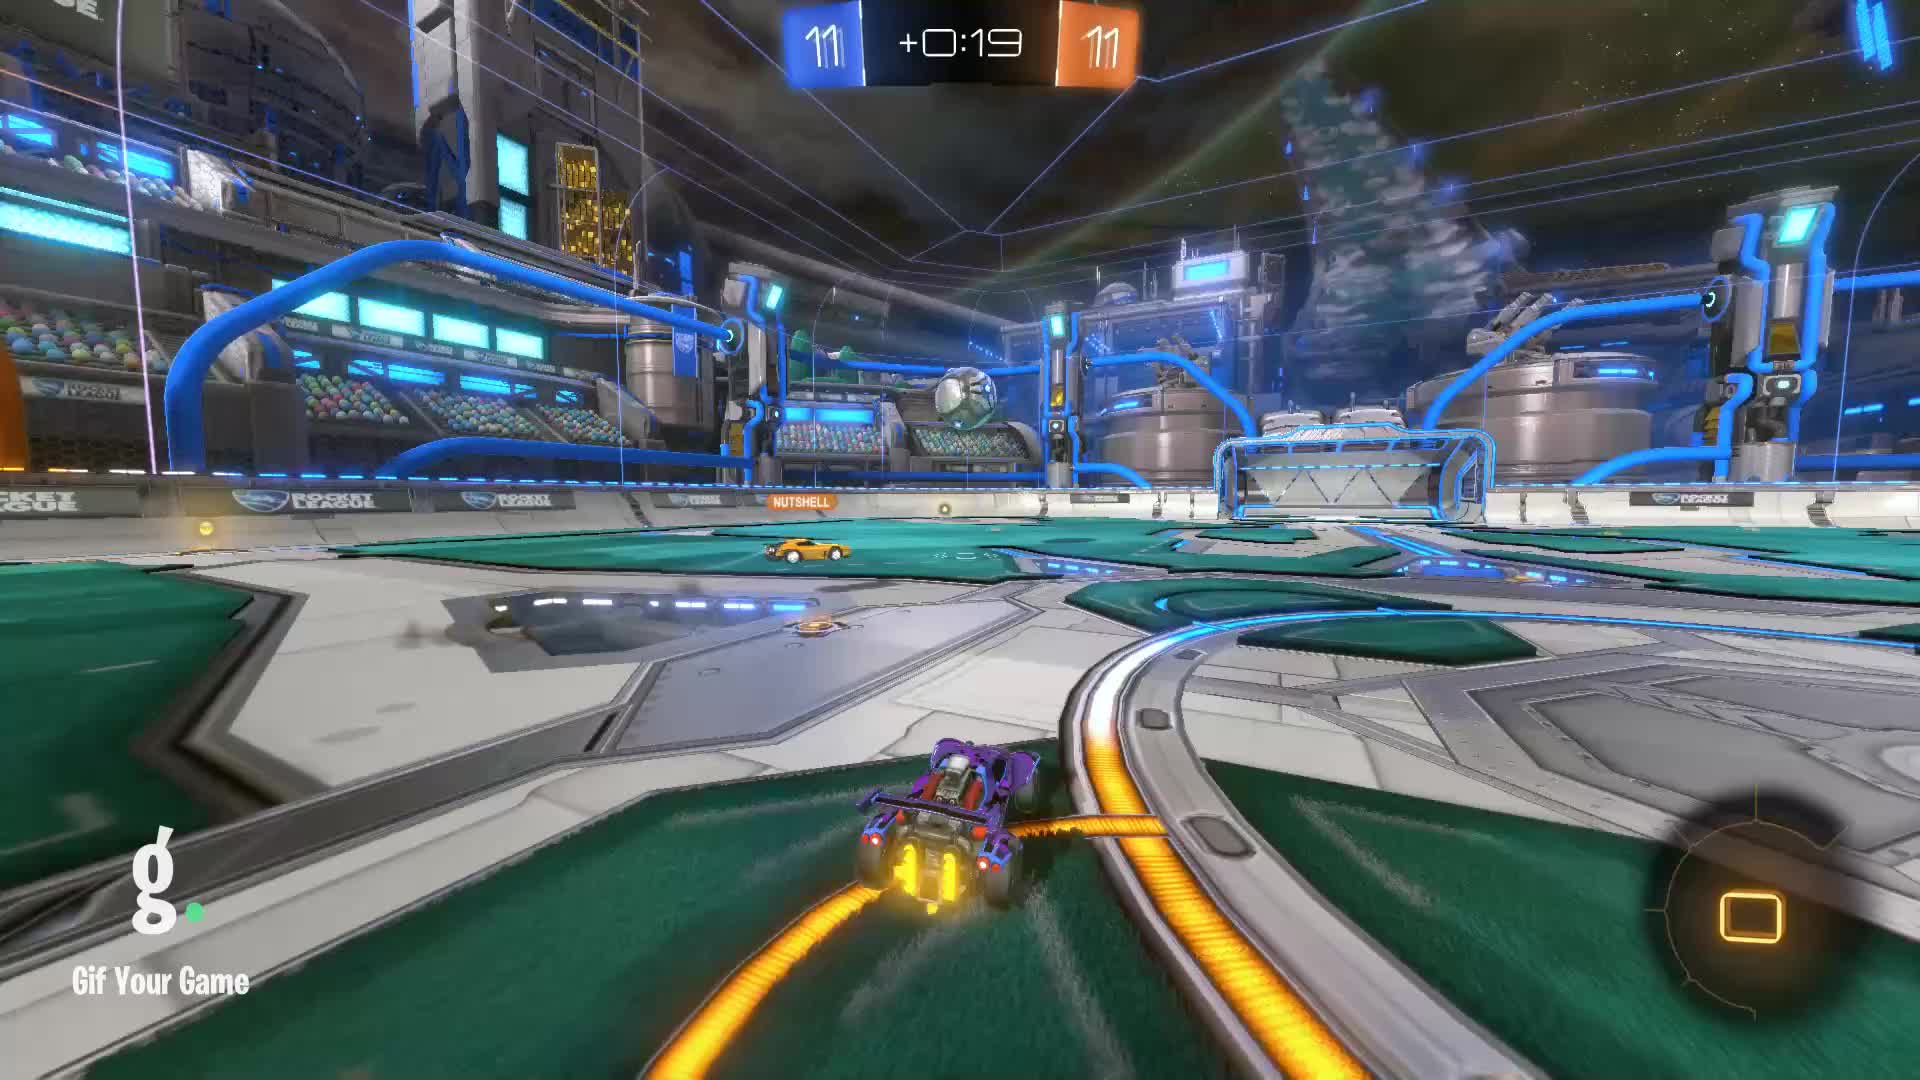 Gif Your Game, GifYourGame, Phaw | .ttv, Rocket League, RocketLeague, Phaw | .ttv Clip 1 GIFs